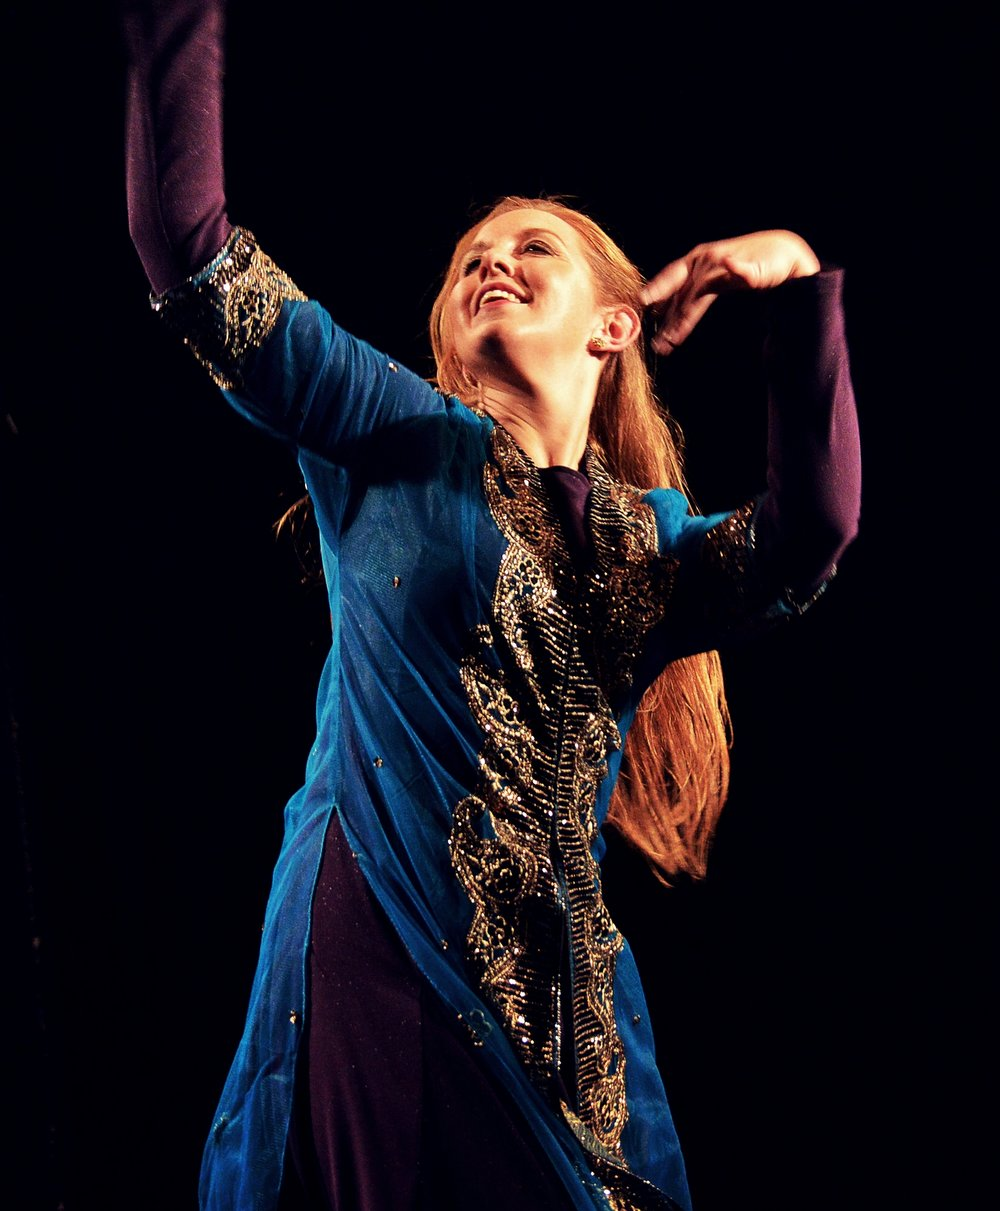 Maria Oriental - Persian Dance at Danskollektivet. Stockholm, November 2015.  Photo: Leo Sutic